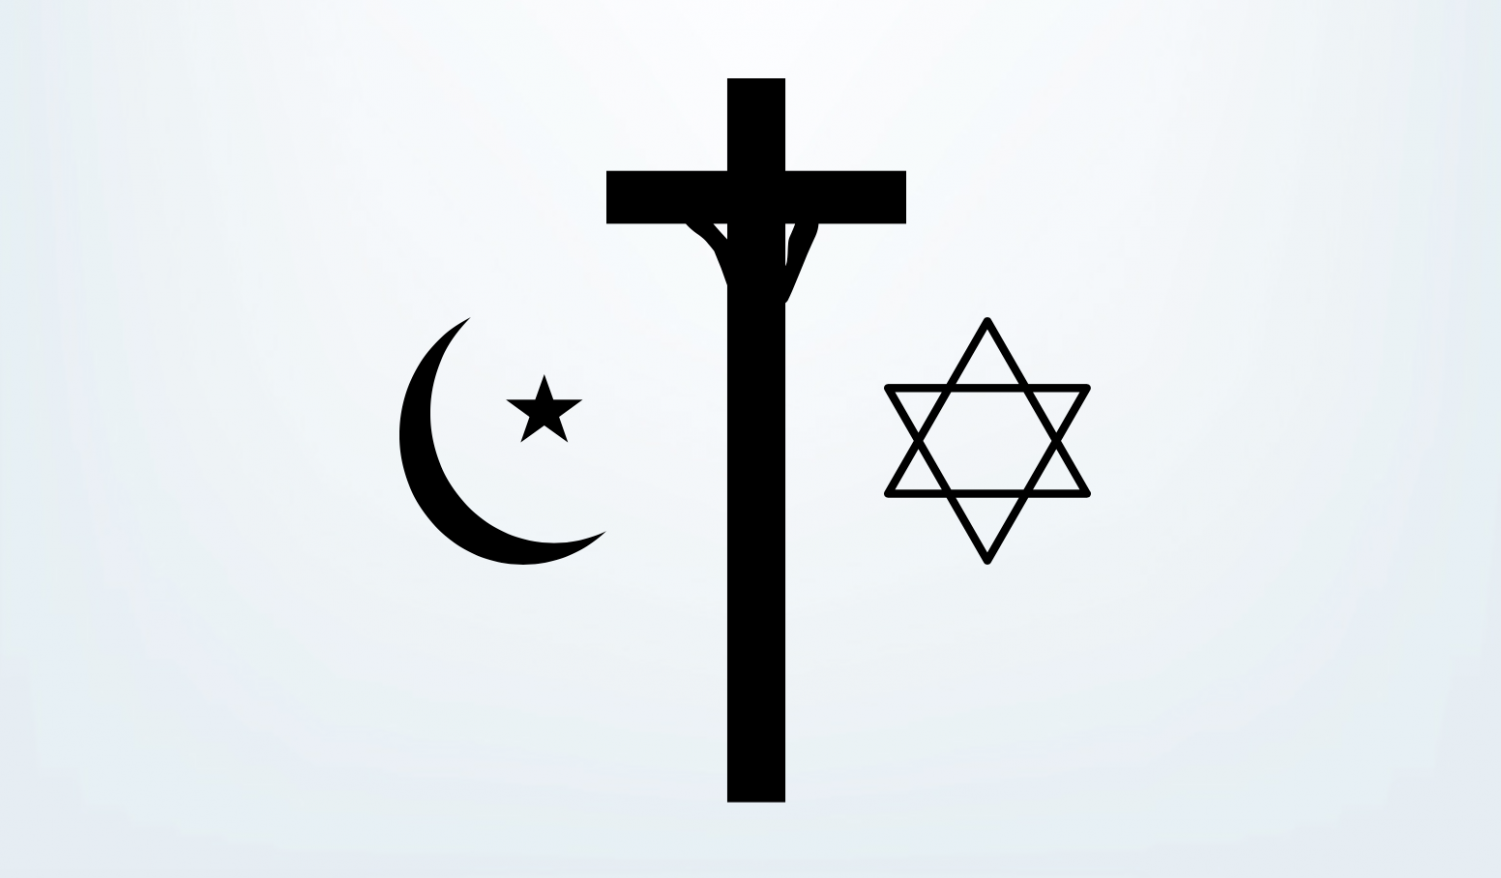 Freedom of religion should not lead to the discrimination of others.